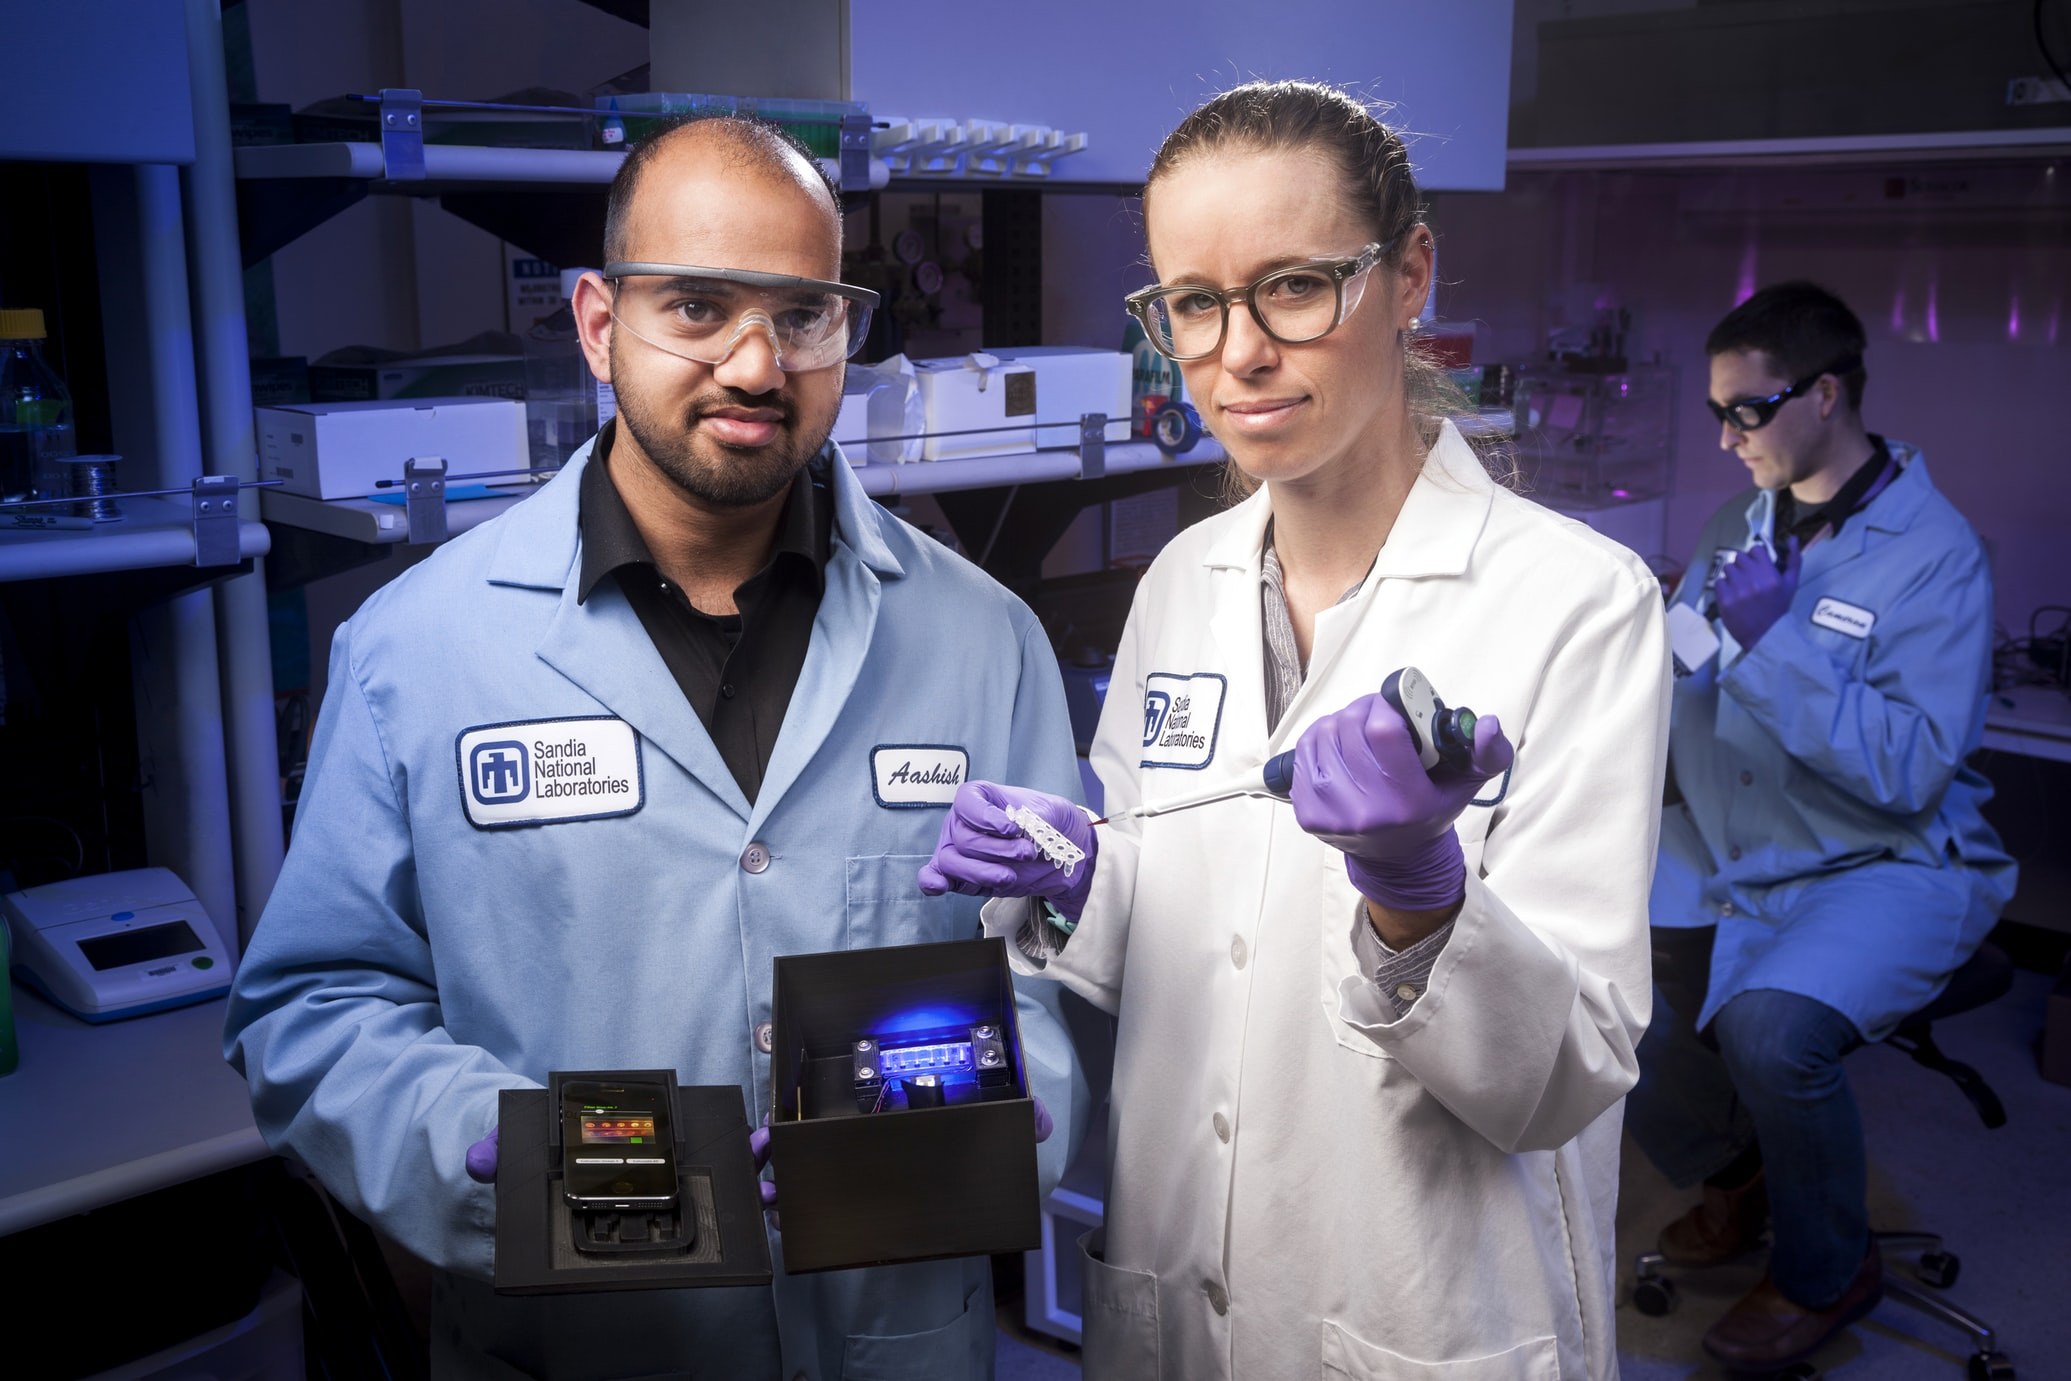 Hydrogen fuel research - image of sceintists wearing Sandia National Laboratories lab coats